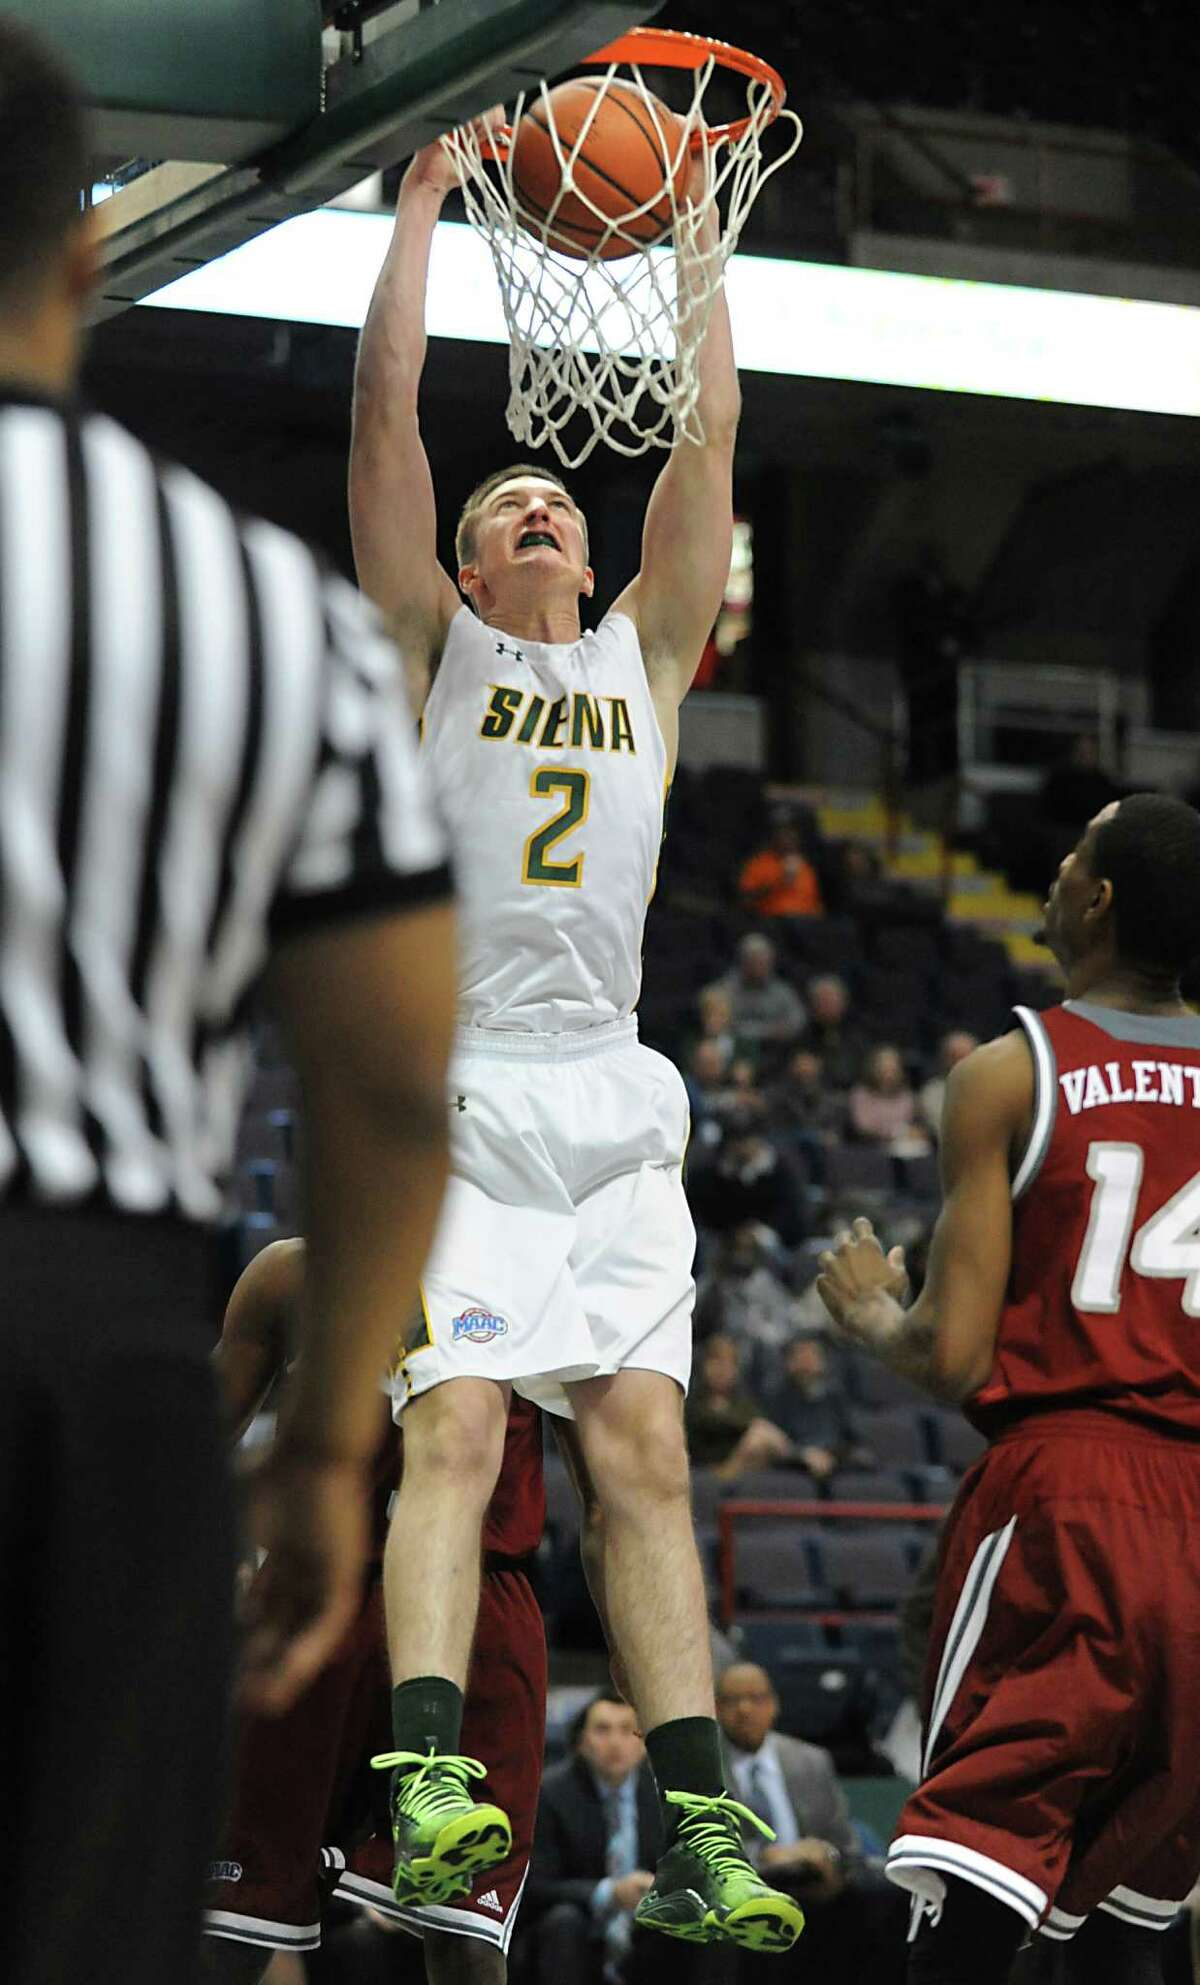 Siena's Willem Brandwijk dunks the ball during a basketball game against Rider at the Times Union Center Monday, Feb. 2, 2015 in Albany, N.Y. (Lori Van Buren / Times Union)